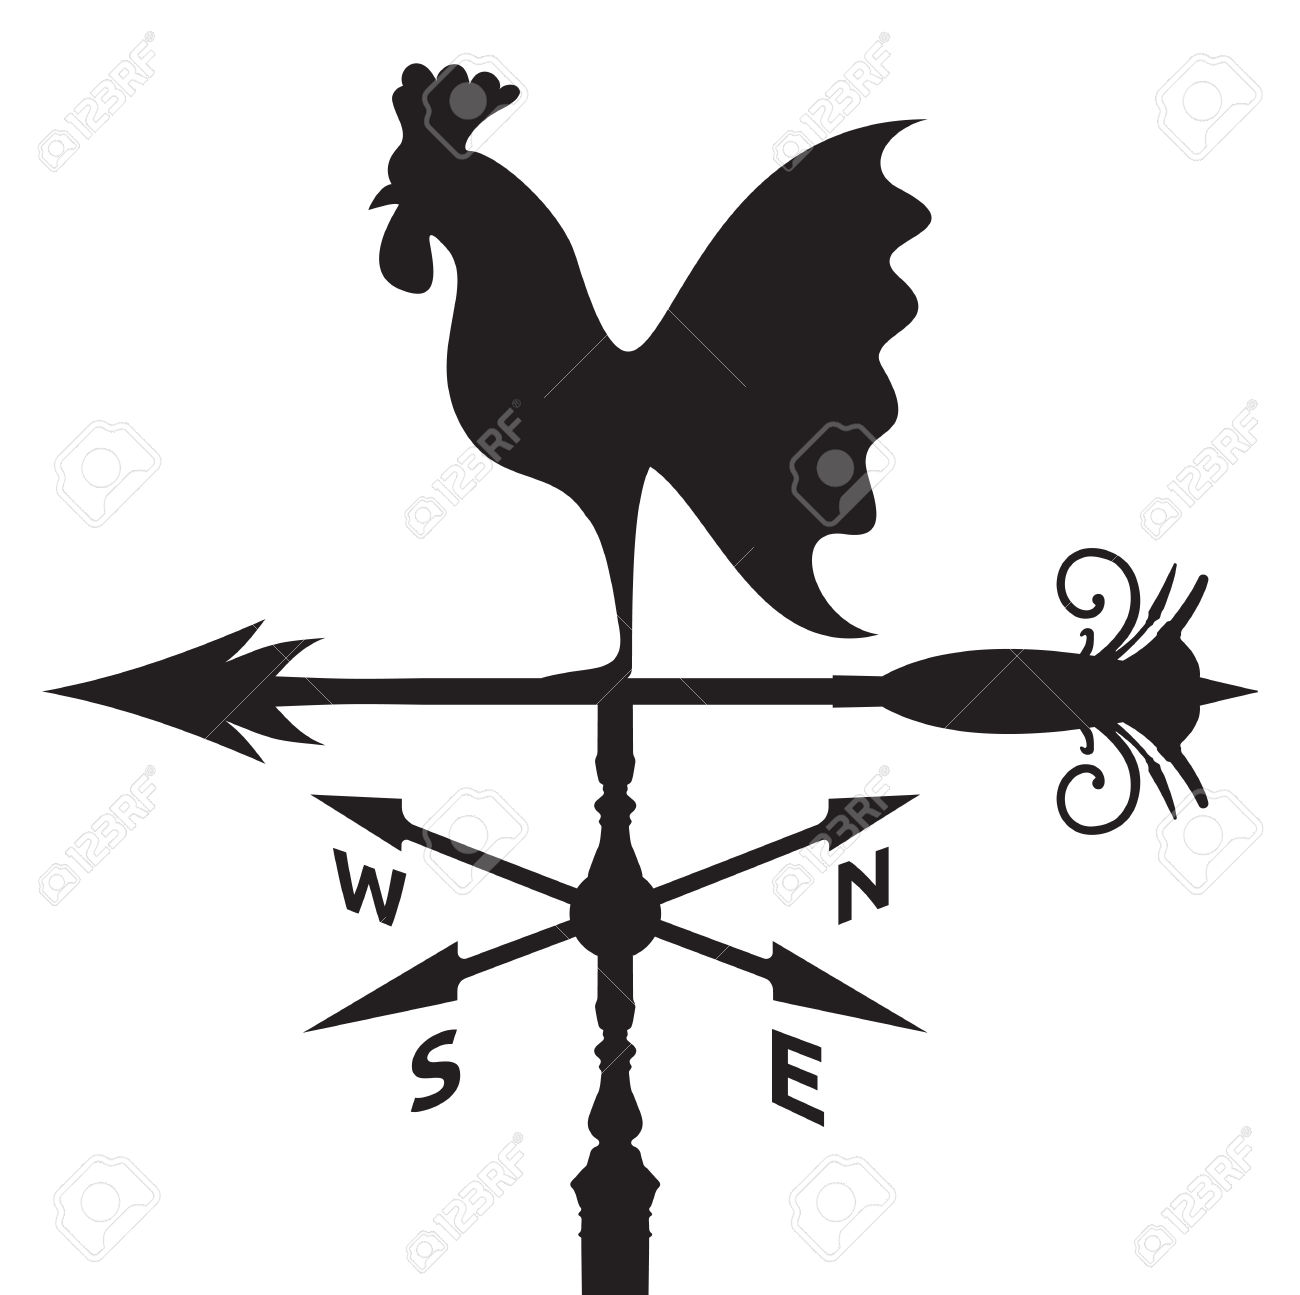 Weather vane clipart.